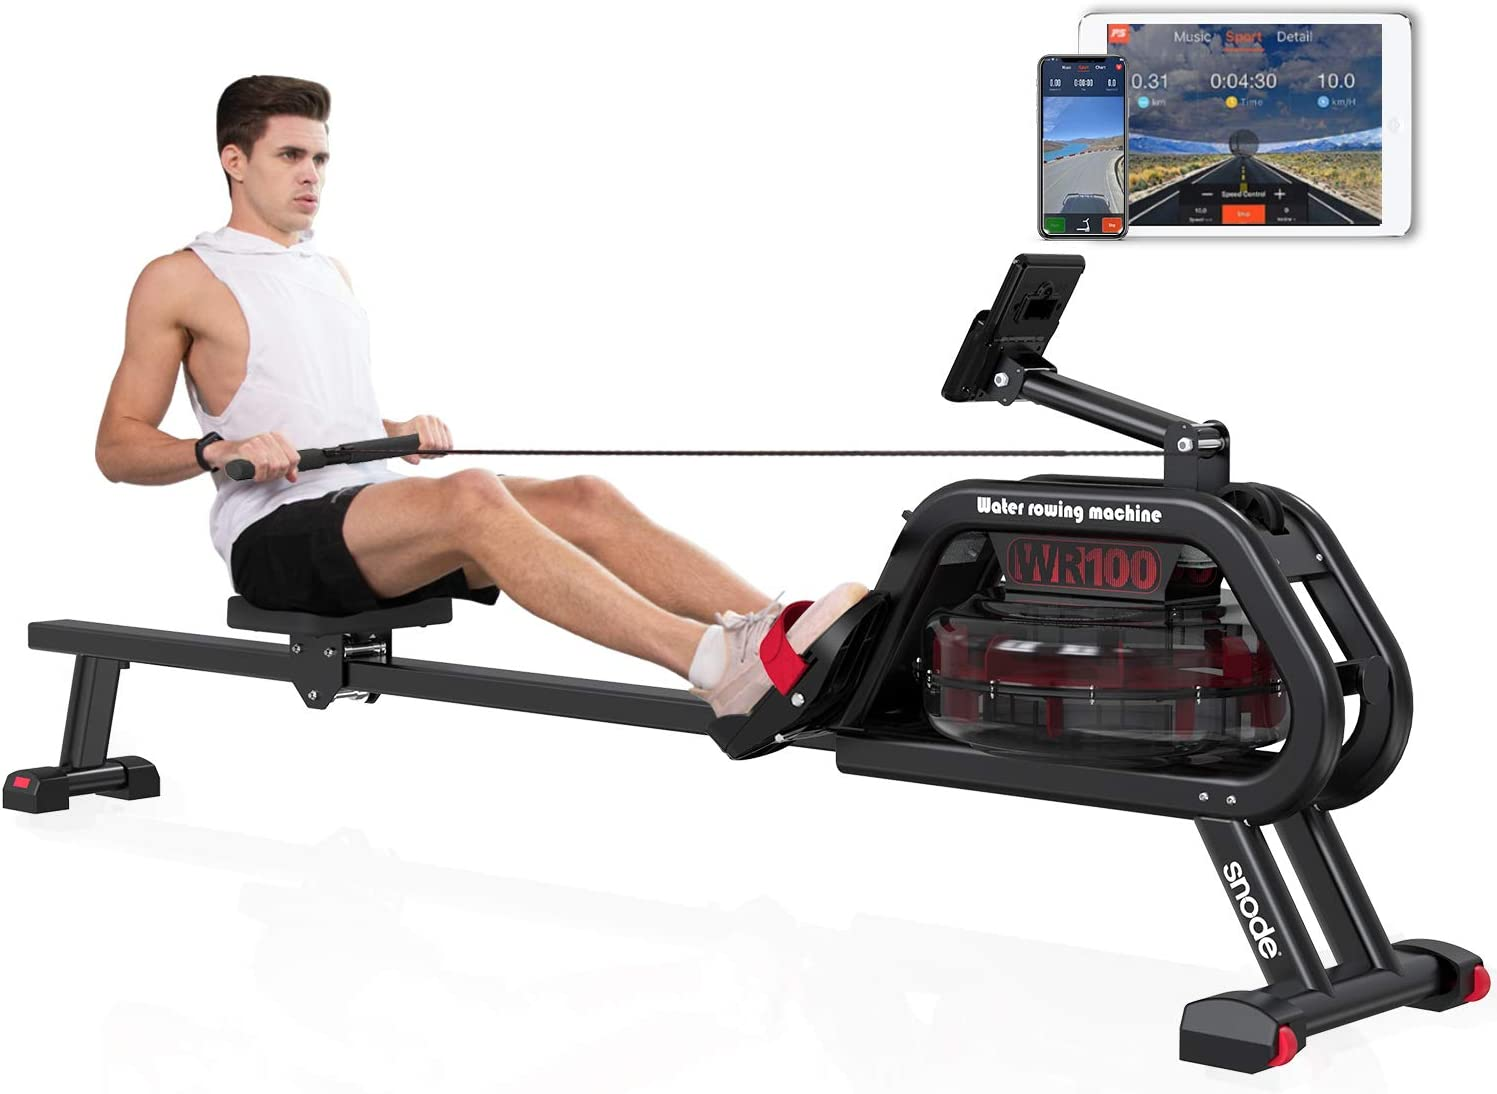 SNODE Water Rowing Machine with APP, Rowing Machine Indoor Exercise Rower 331Lbs Capacity, Soft Seat, Smooth Quiet Home Fitness Workout